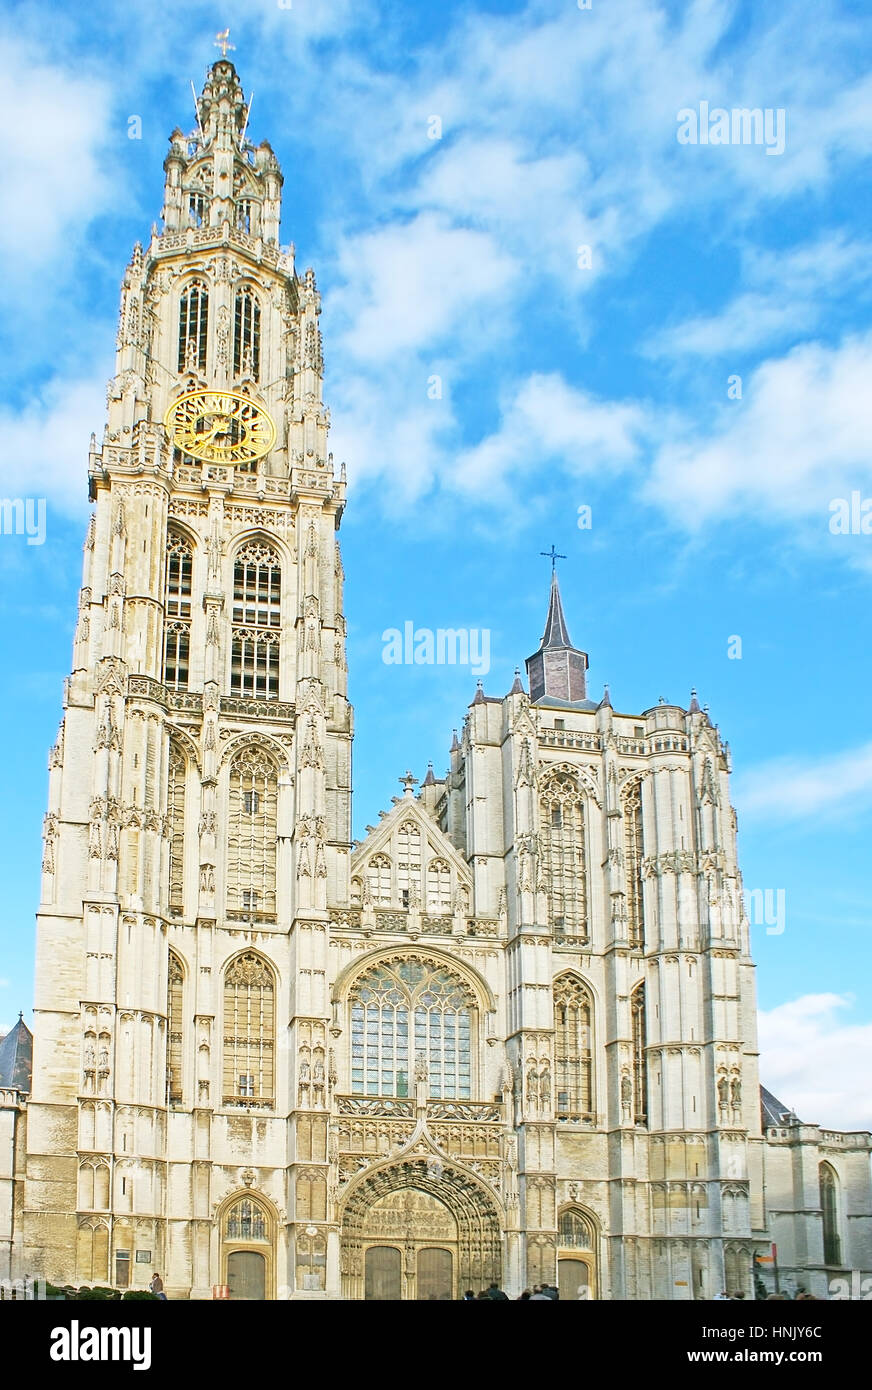 The splendid Gothic facade of the Cathedral of Our Lady of Antwerp, decorated with carved stone patterns and sculptures - Stock Image